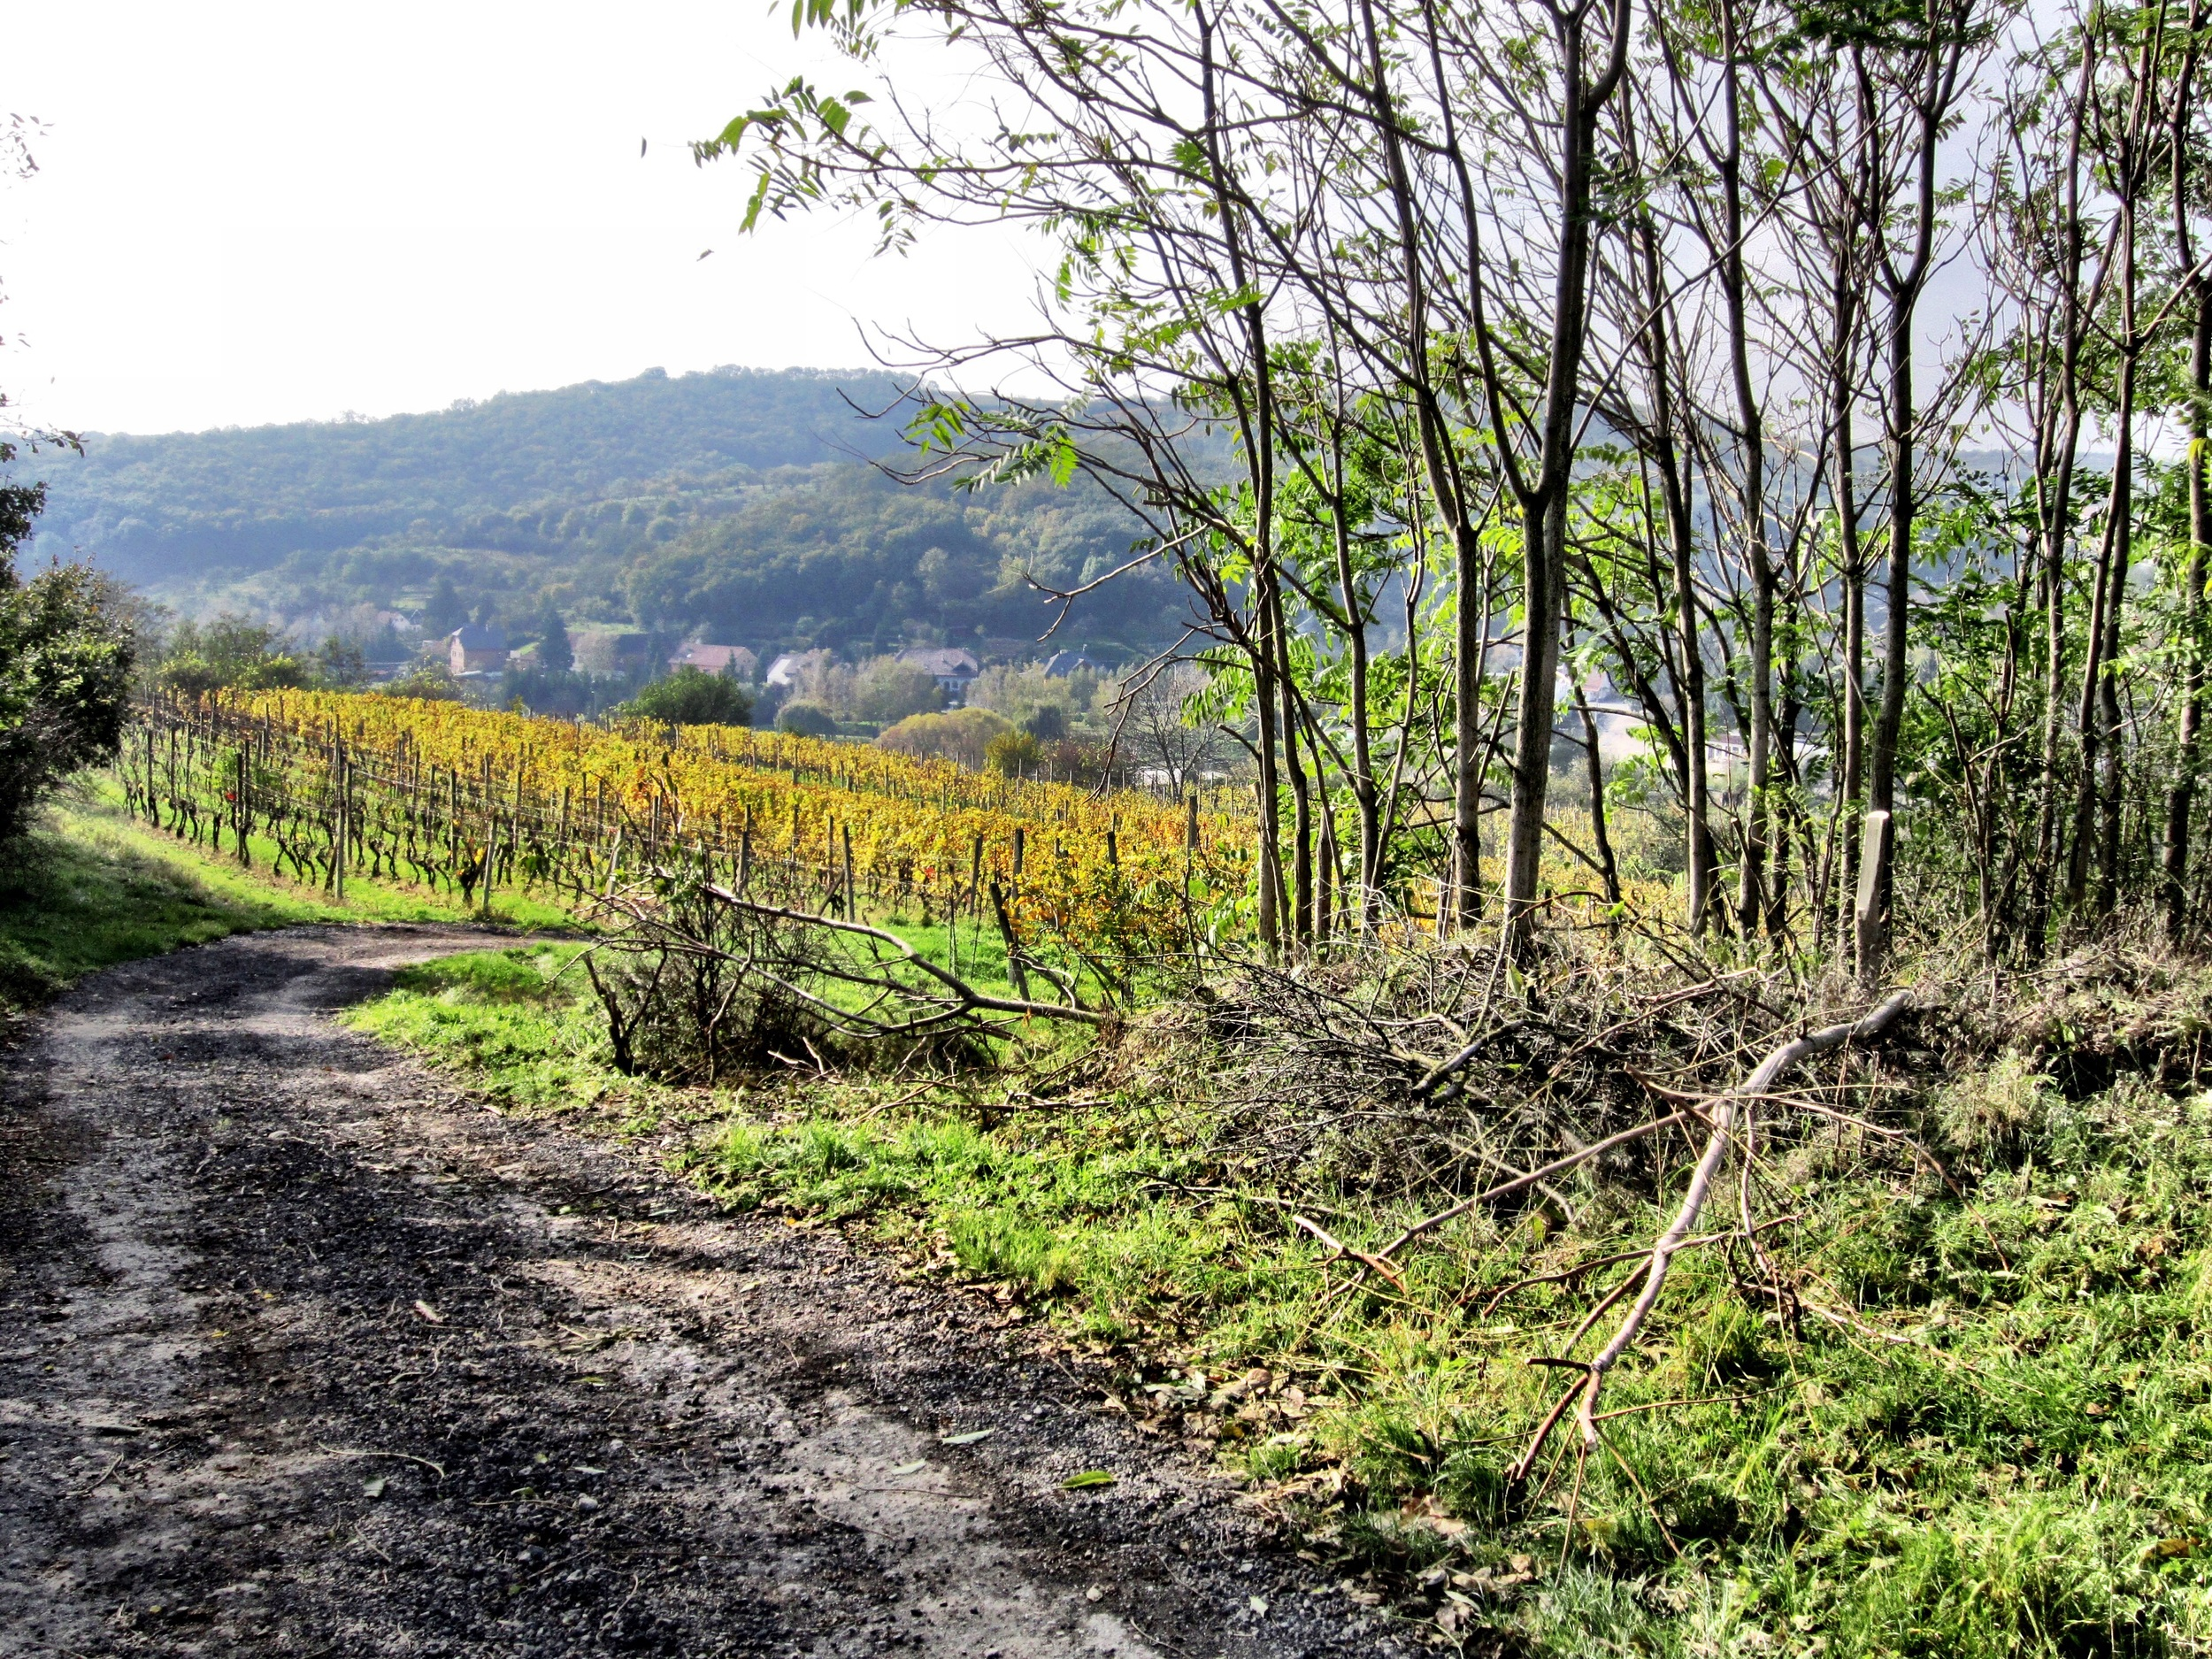 Walking home from the Stavek vineyards for lunch, this was waiting around a bend